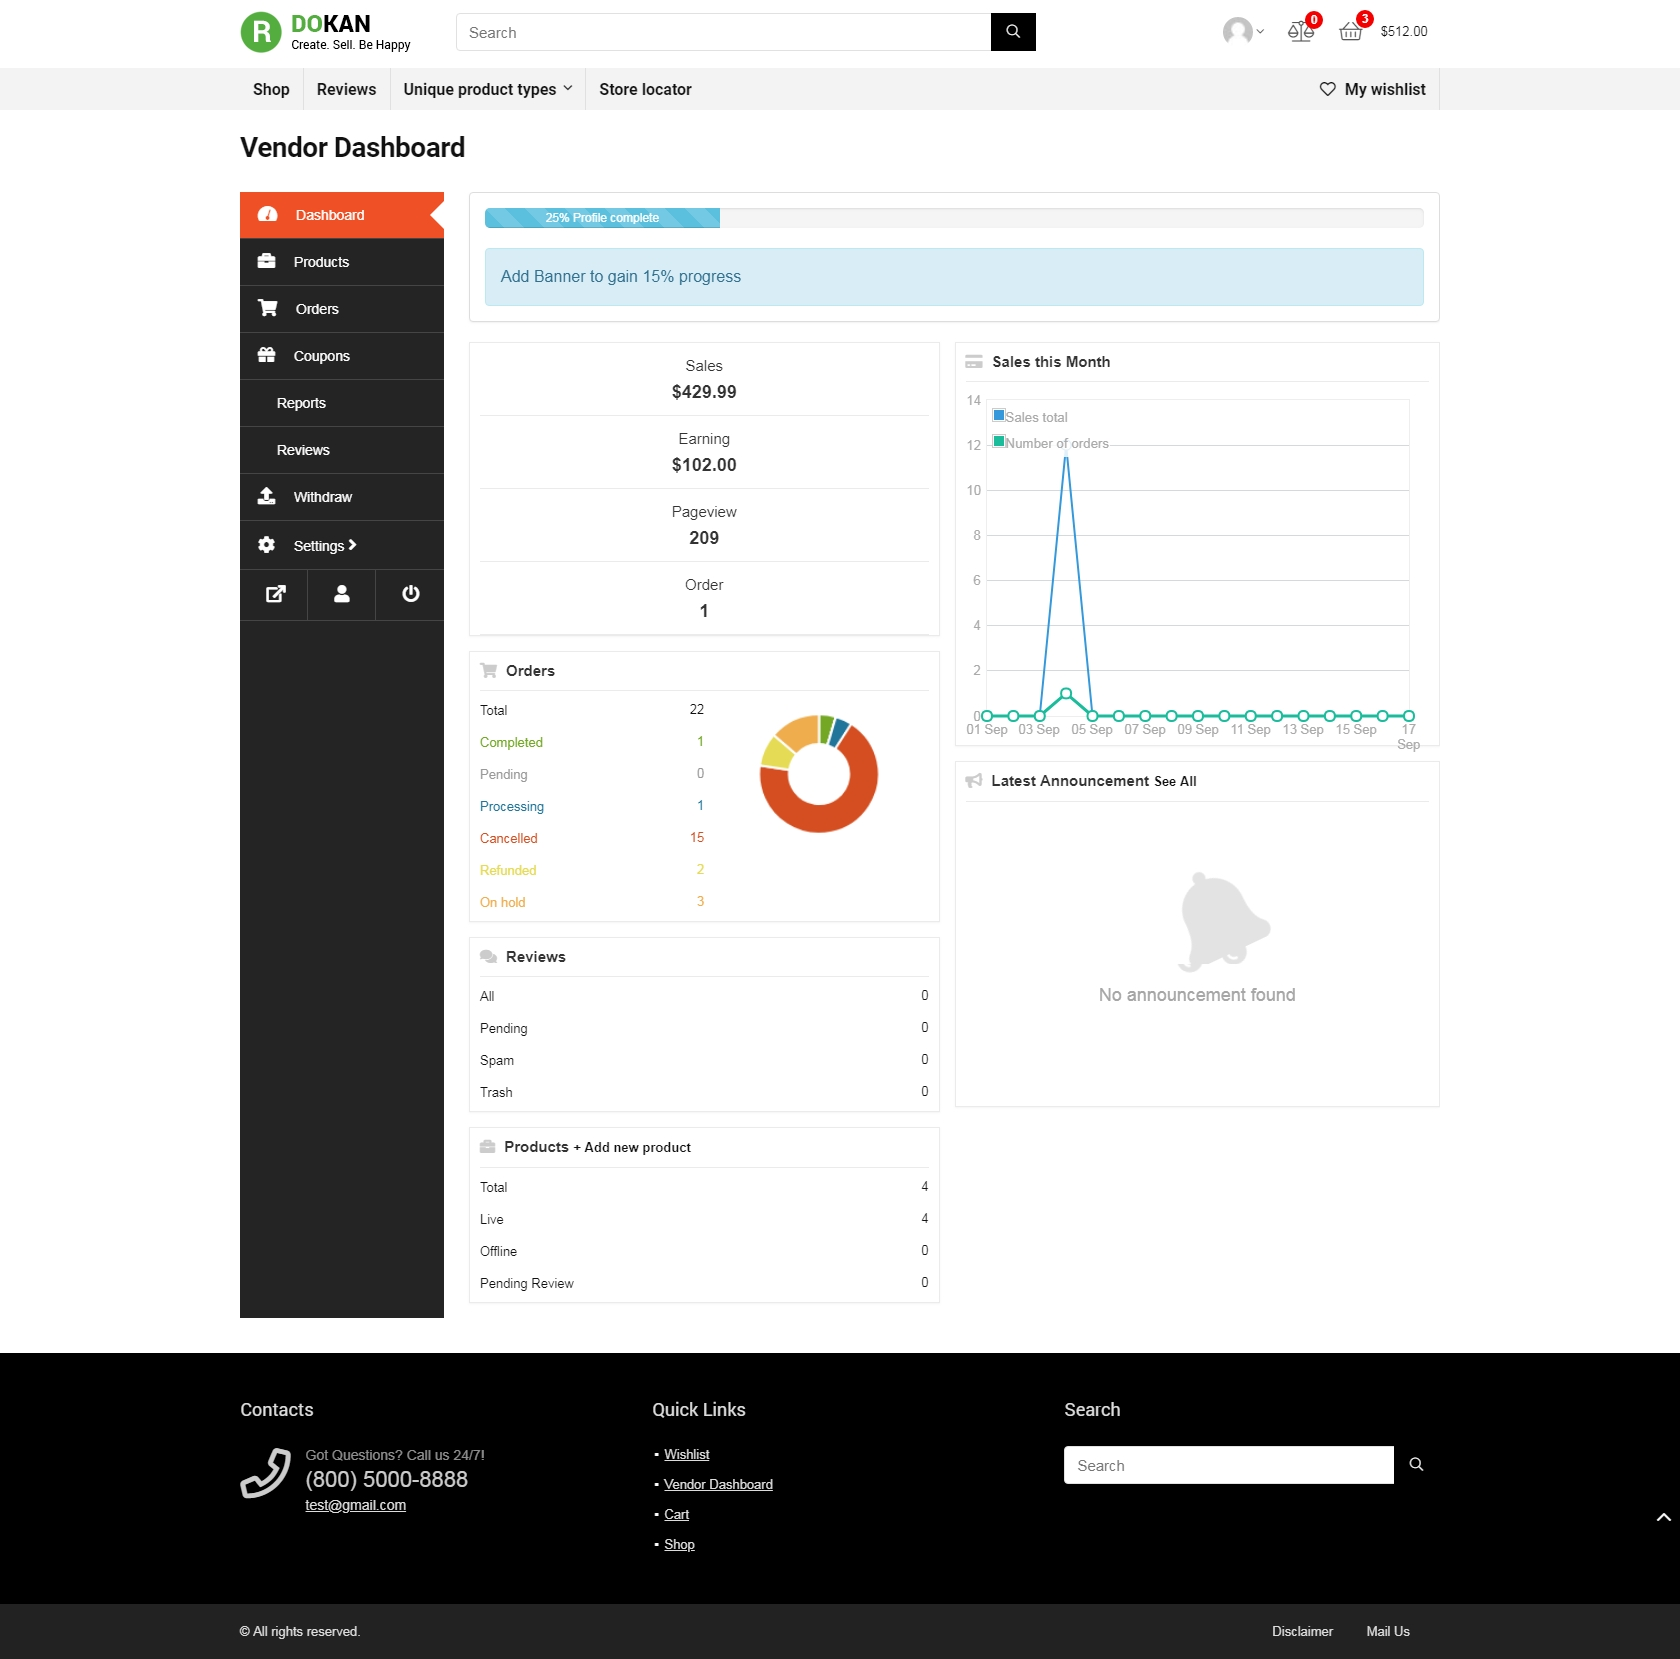 Image of Dokan Vendor Dashboard